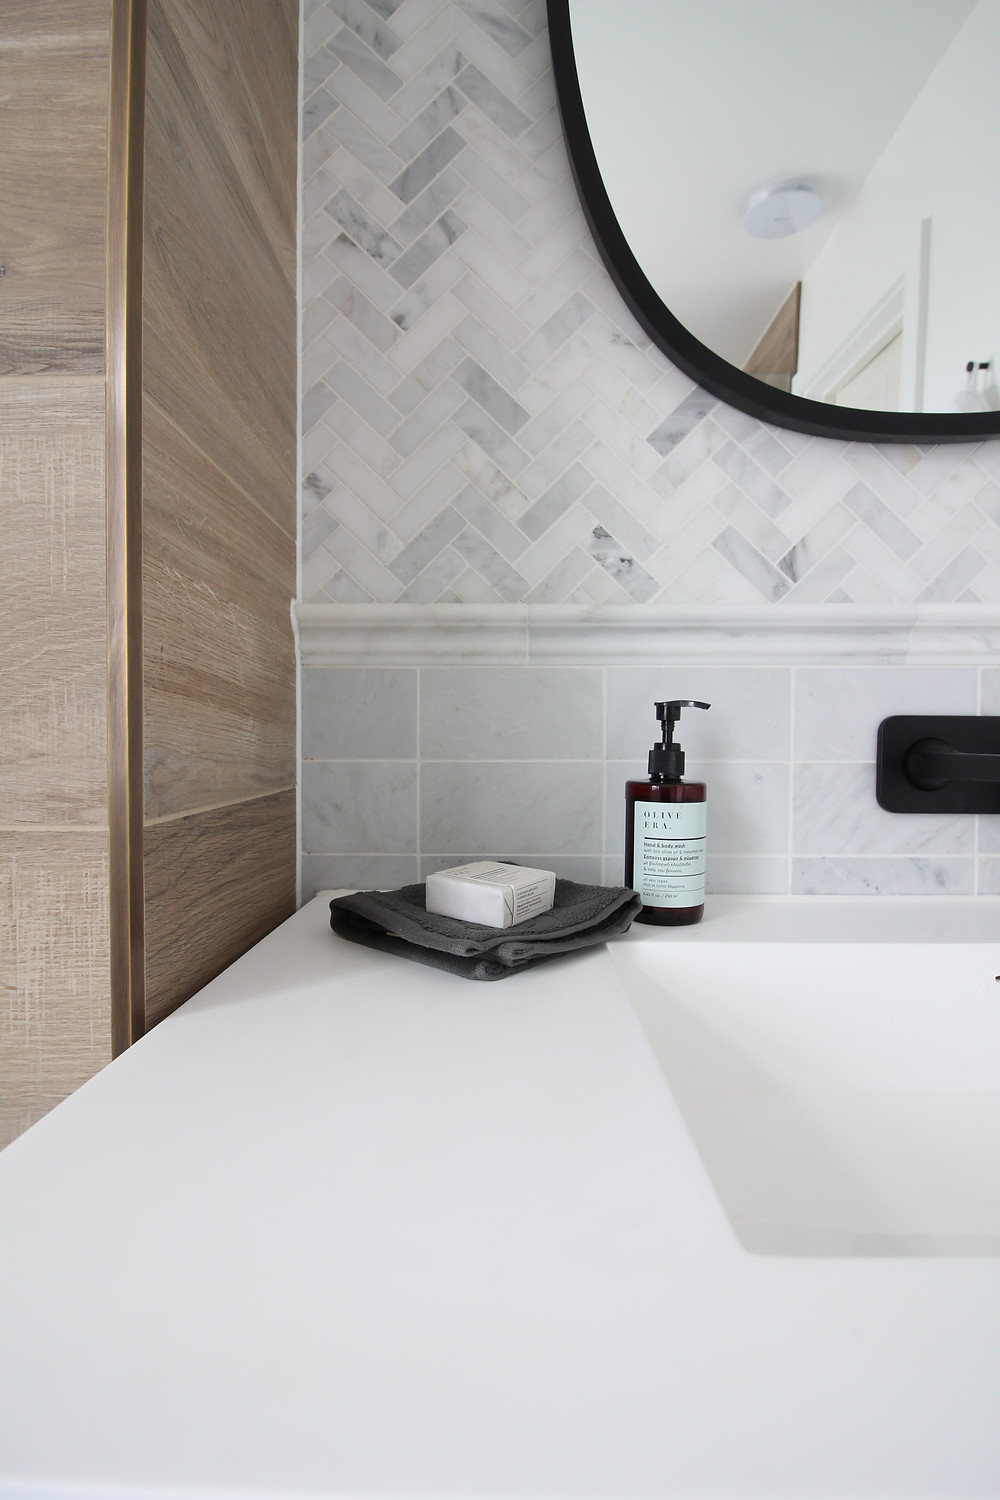 marble herringbone mosaic and marble metro tiles Mandarin Stone, and the Lusso PIANA 1000 vanity with resin Stone sink